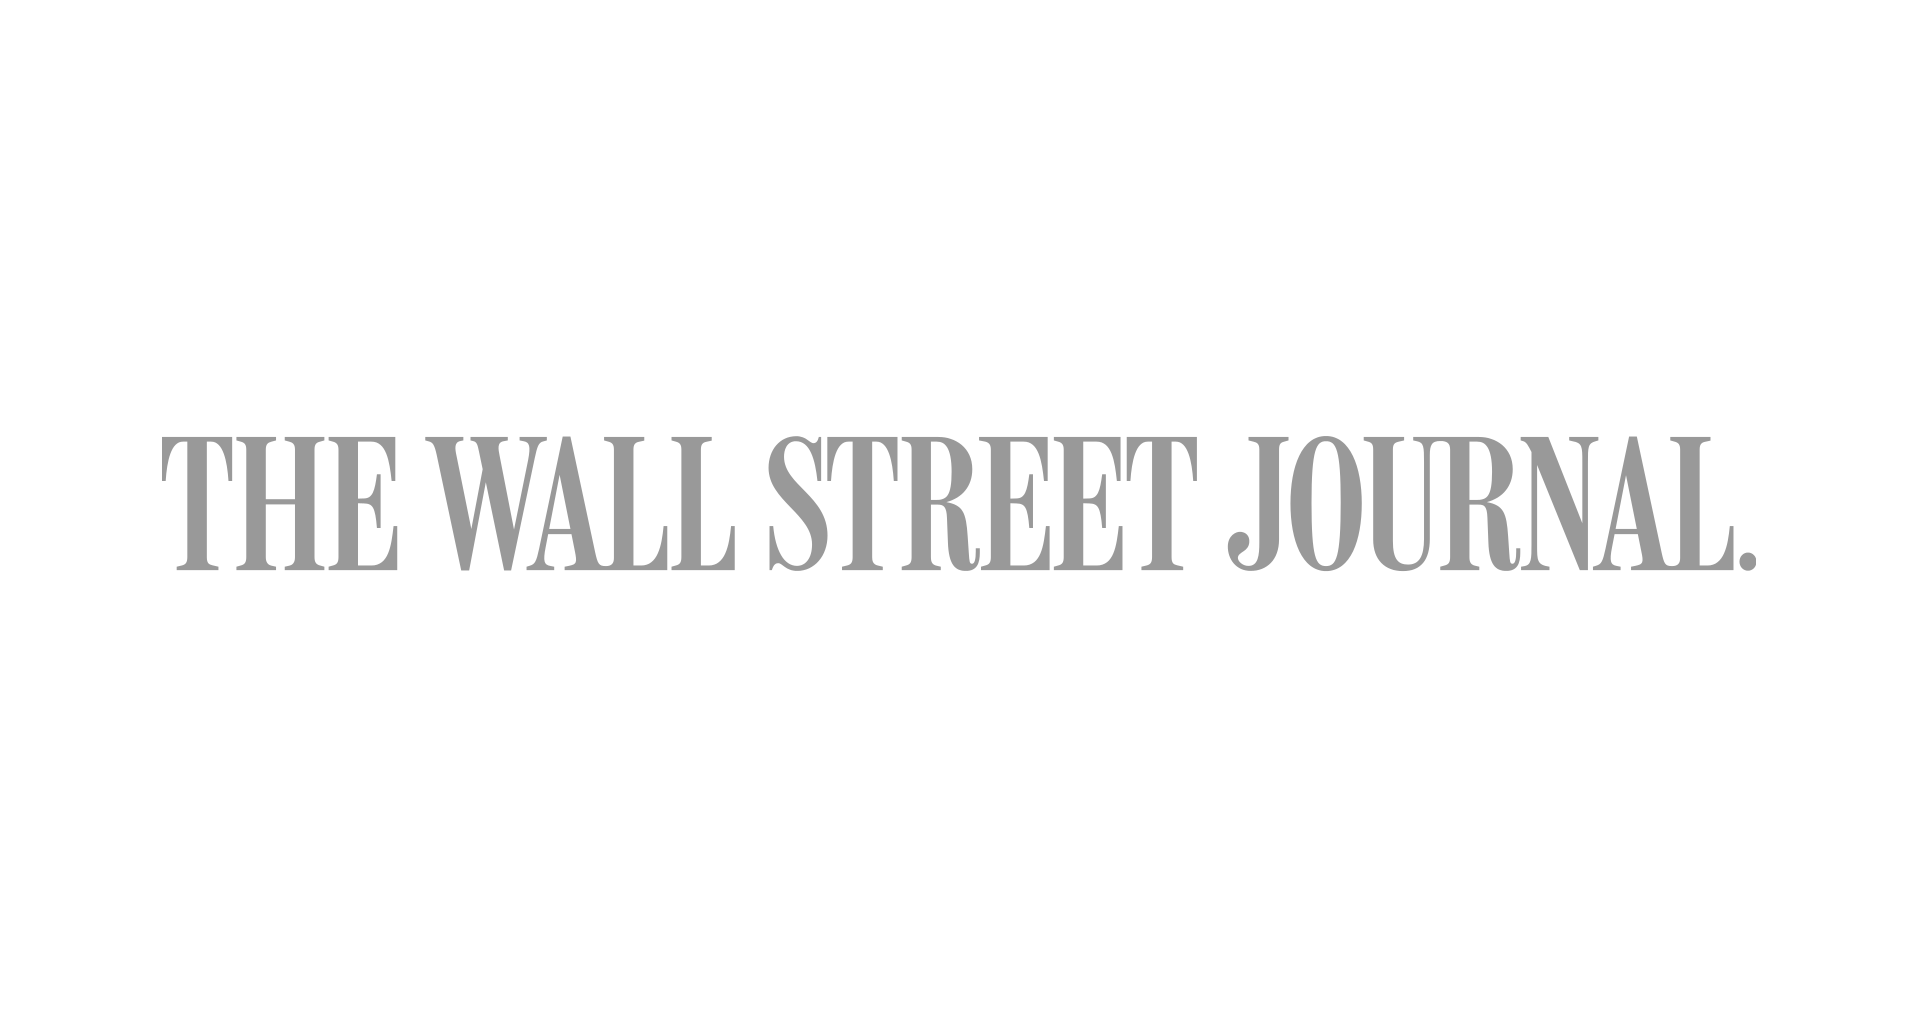 Wall street journal 1920x1010